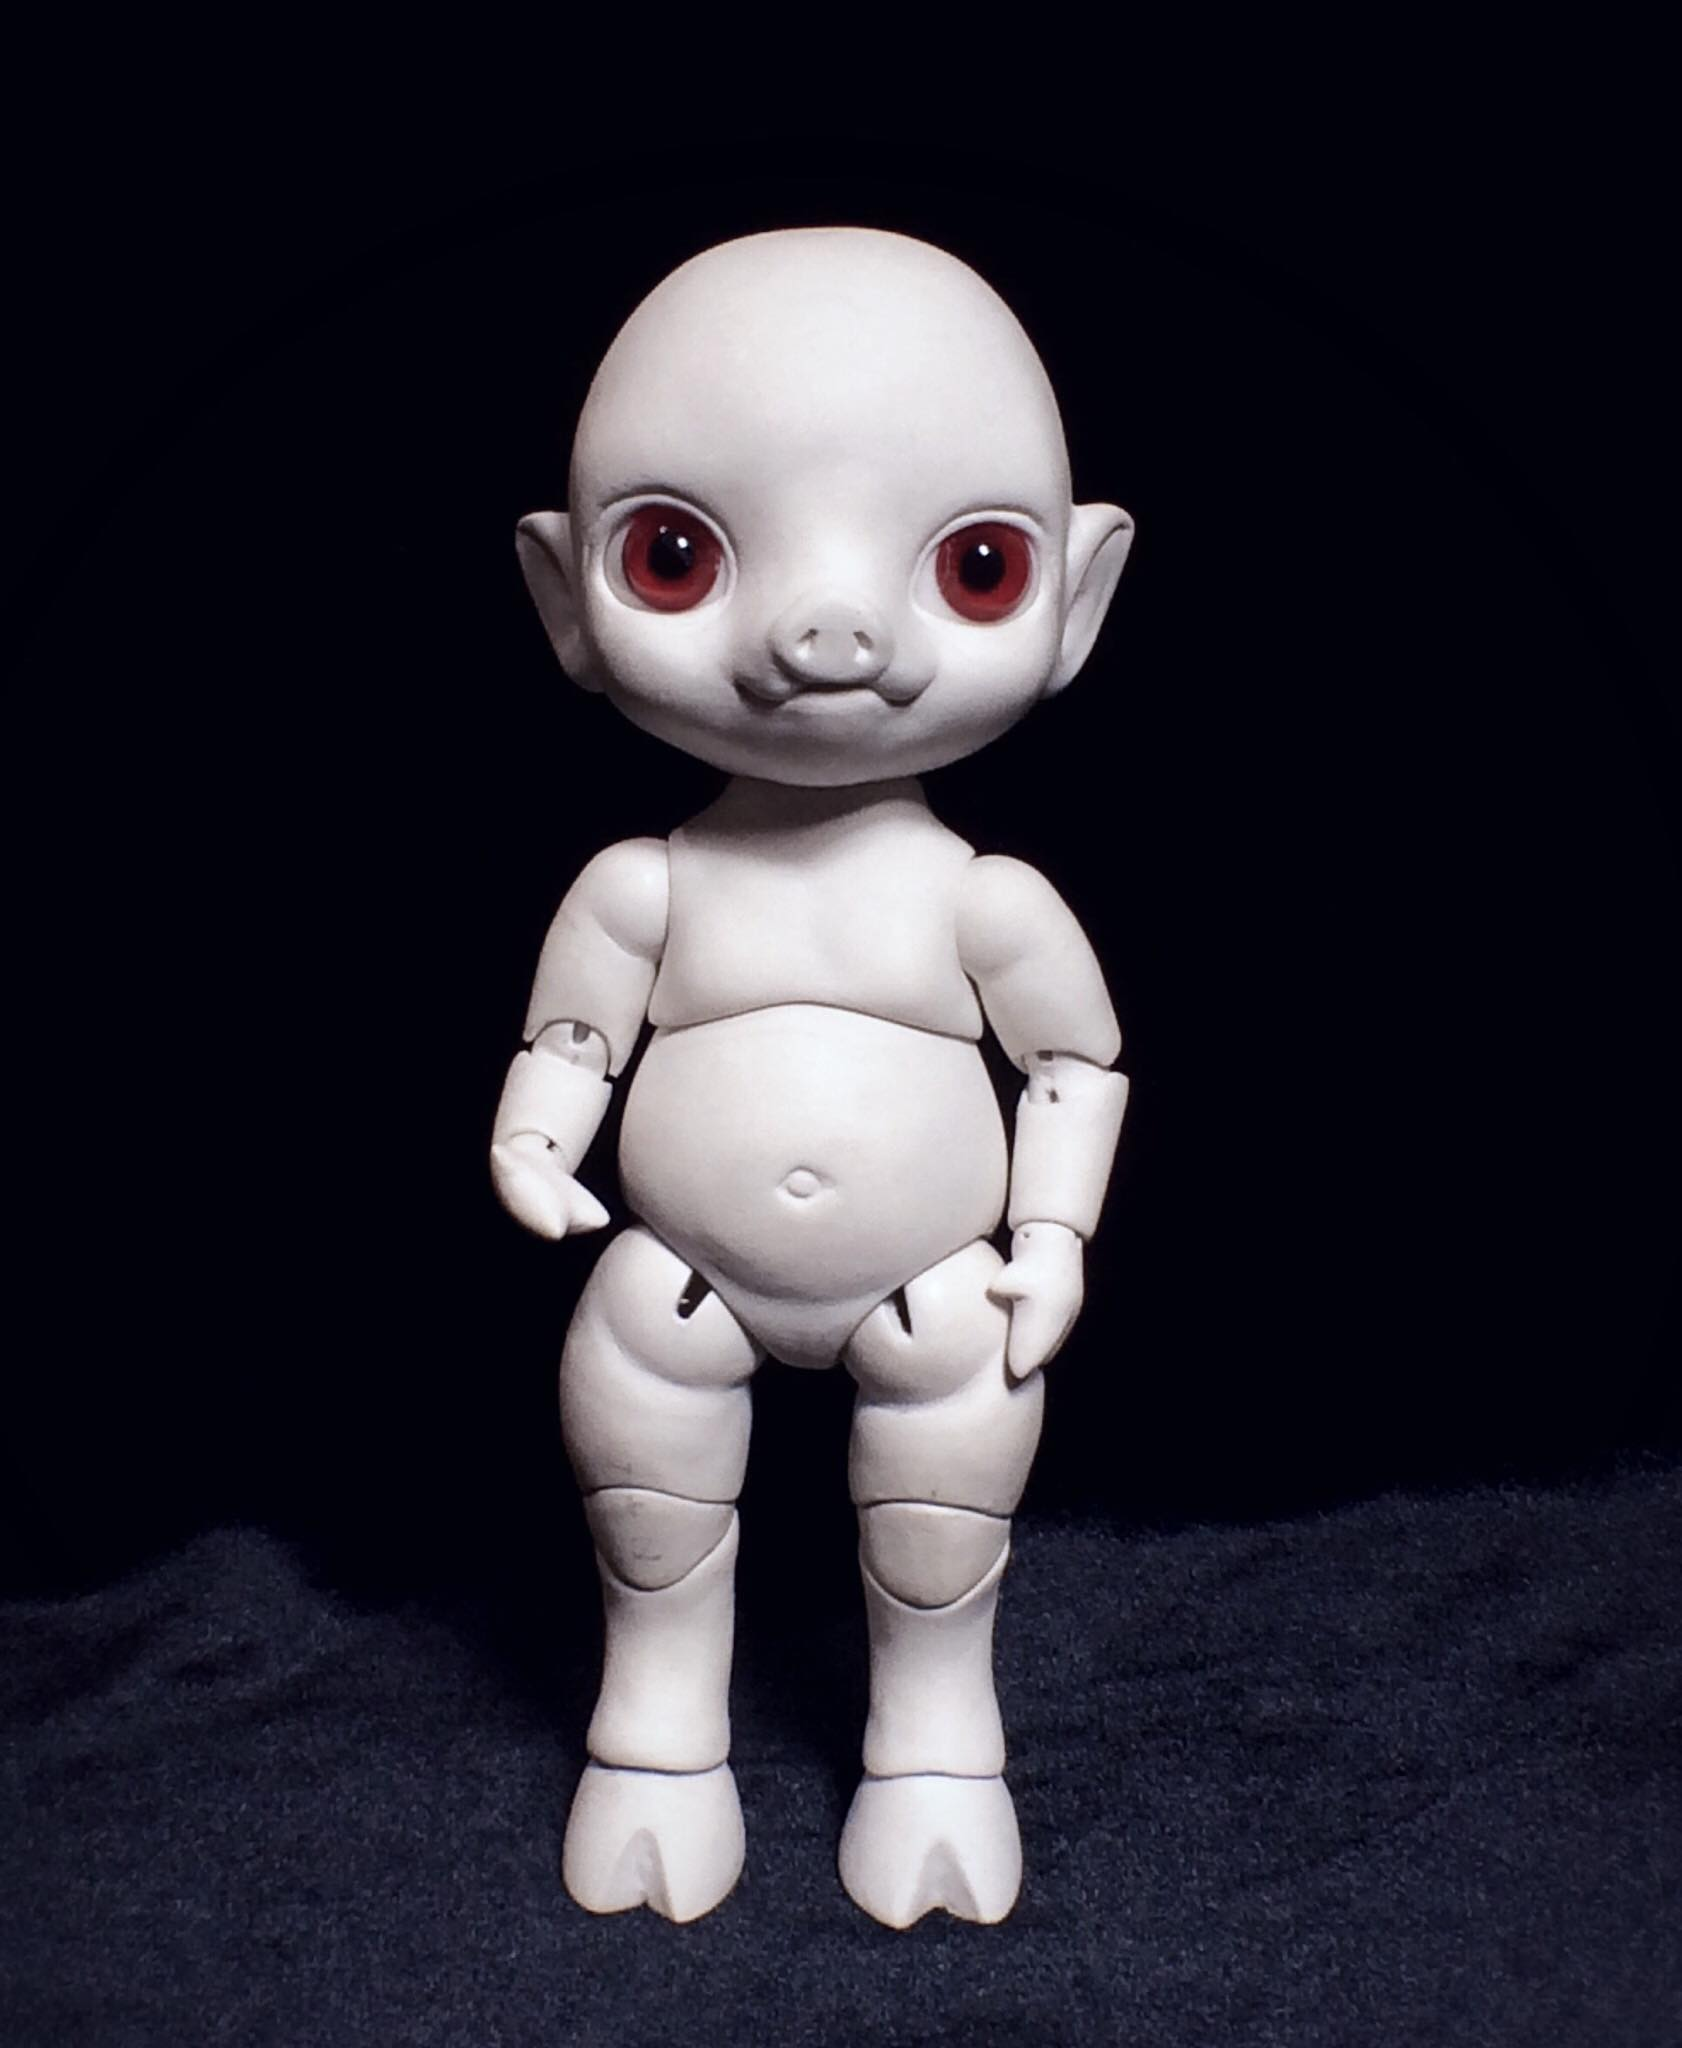 molding-and-casting-a-bjd-doll-01.jpg